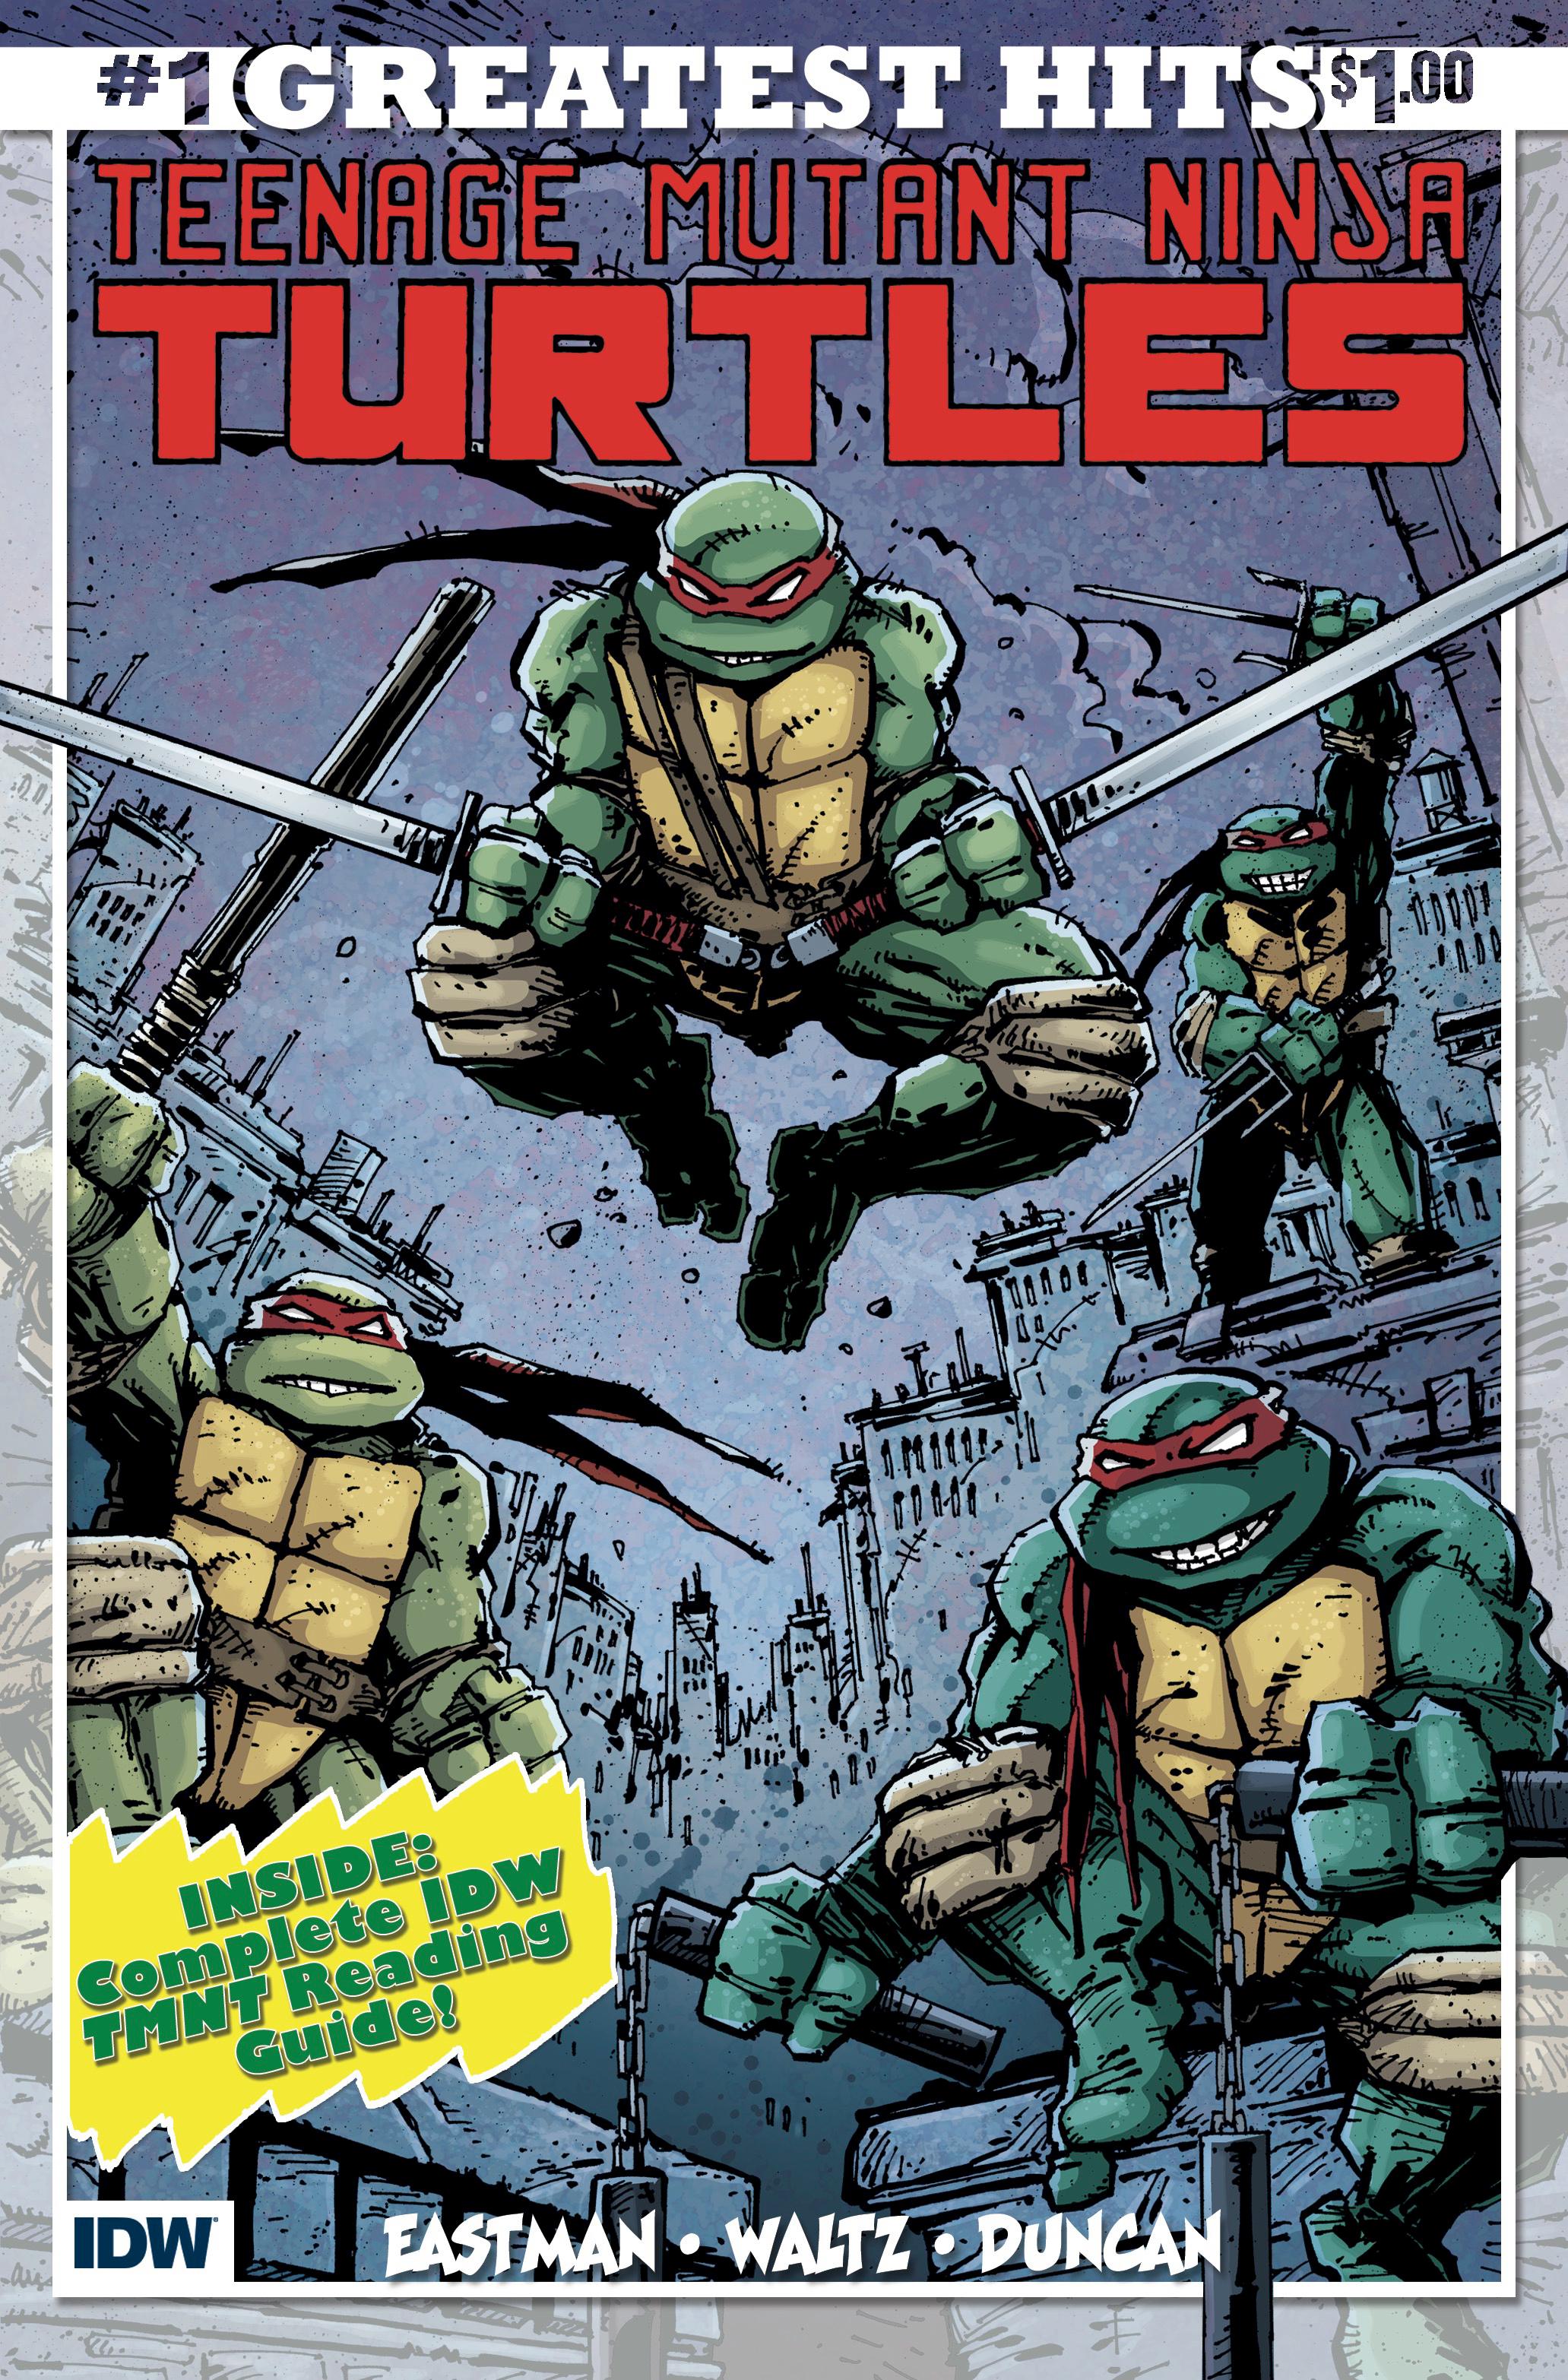 TEENAGE MUTANT NINJA TURTLES #1 IDW GREATEST HITS